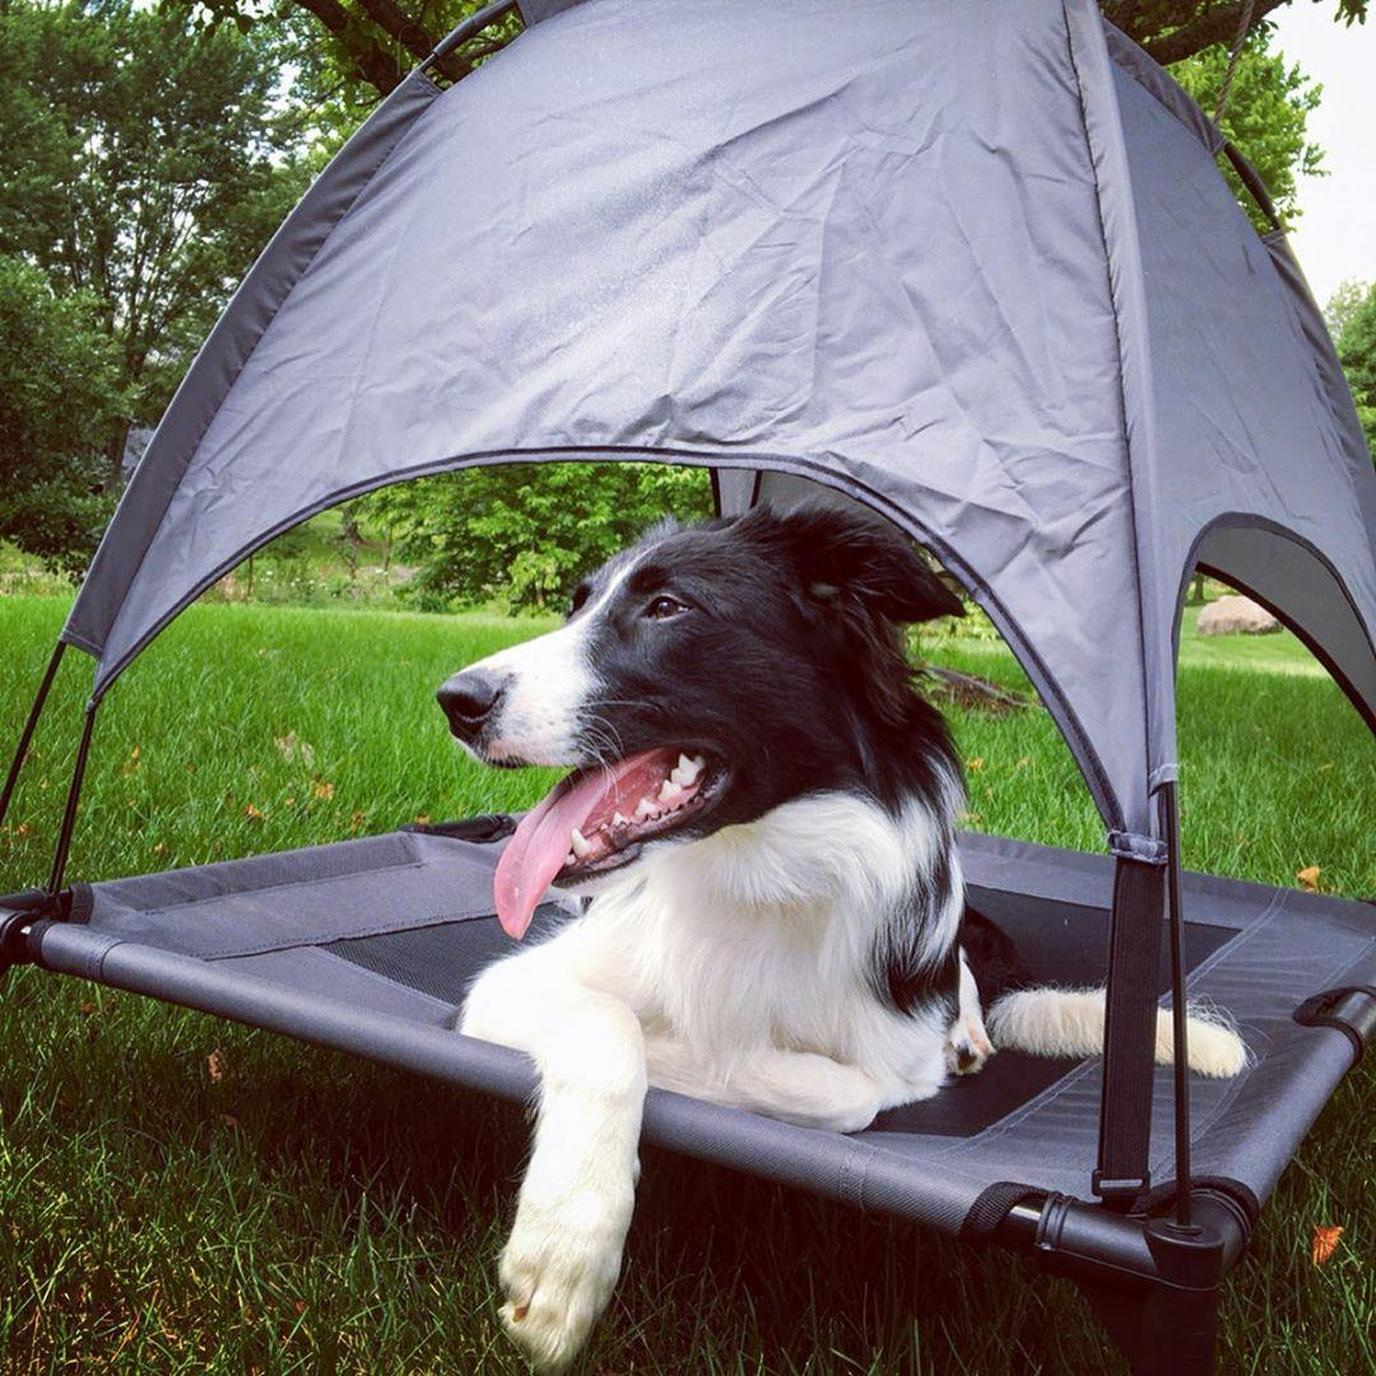 A dog enjoys his elevated and shaded dog bed.